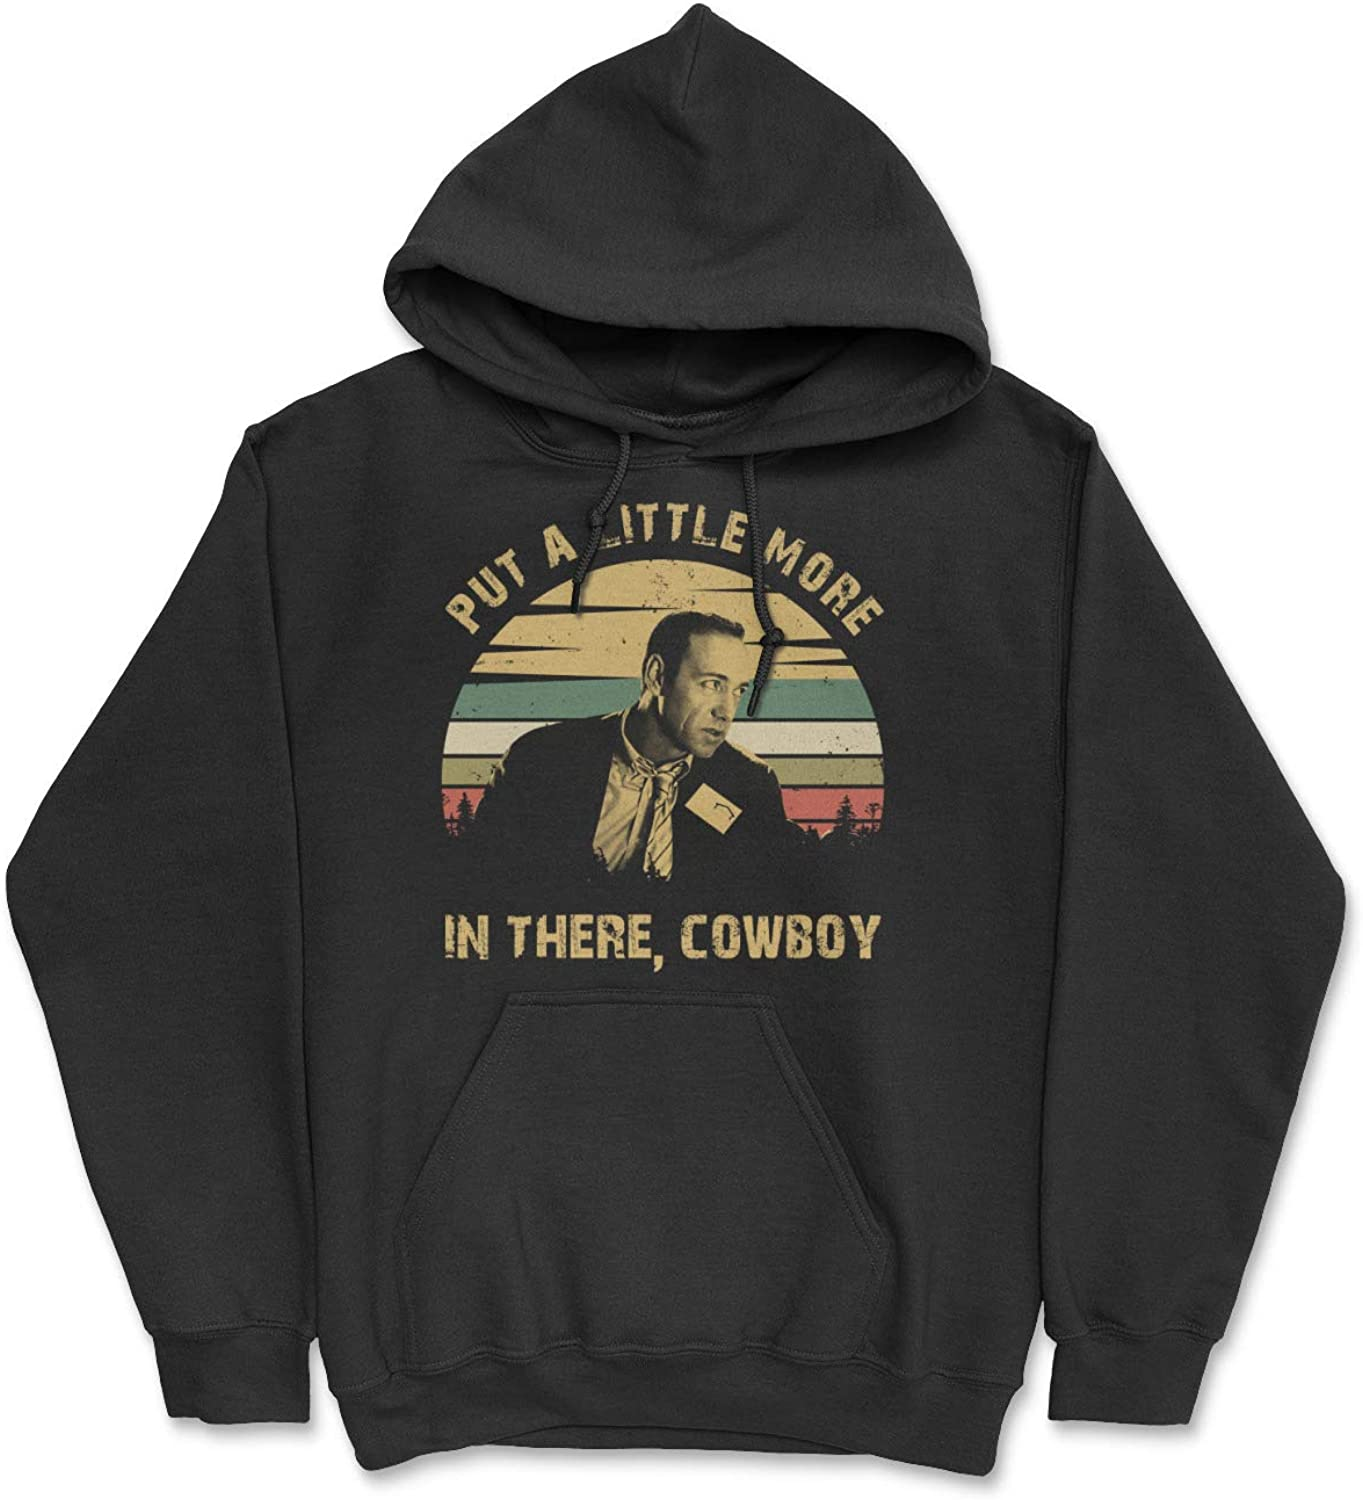 Put A Little More in There Cowboy Vintage T-Shirt